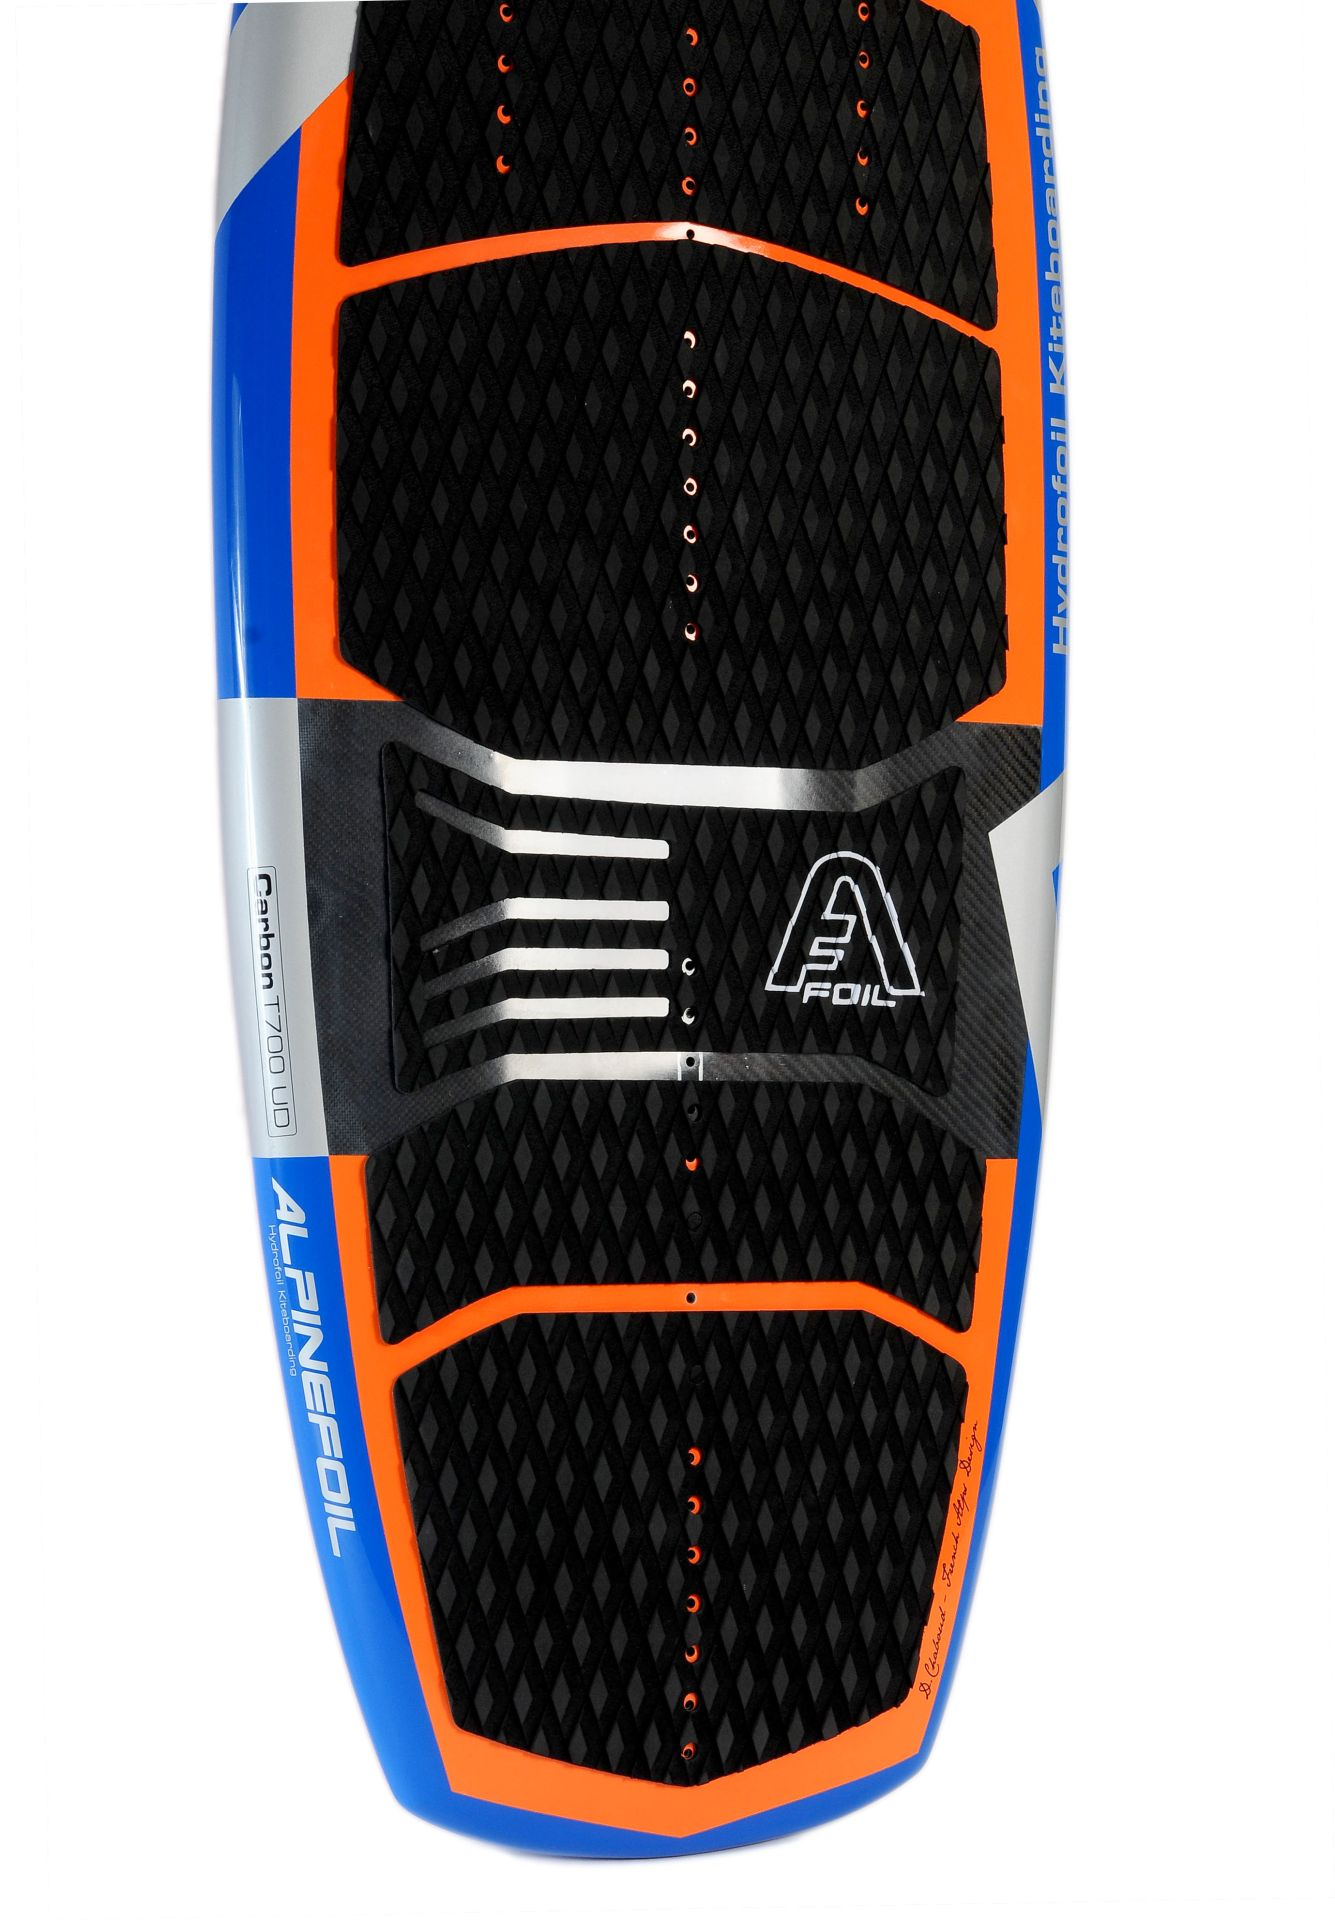 Kitefoil board alpinefoil cx v6 wave convertible 4226 1